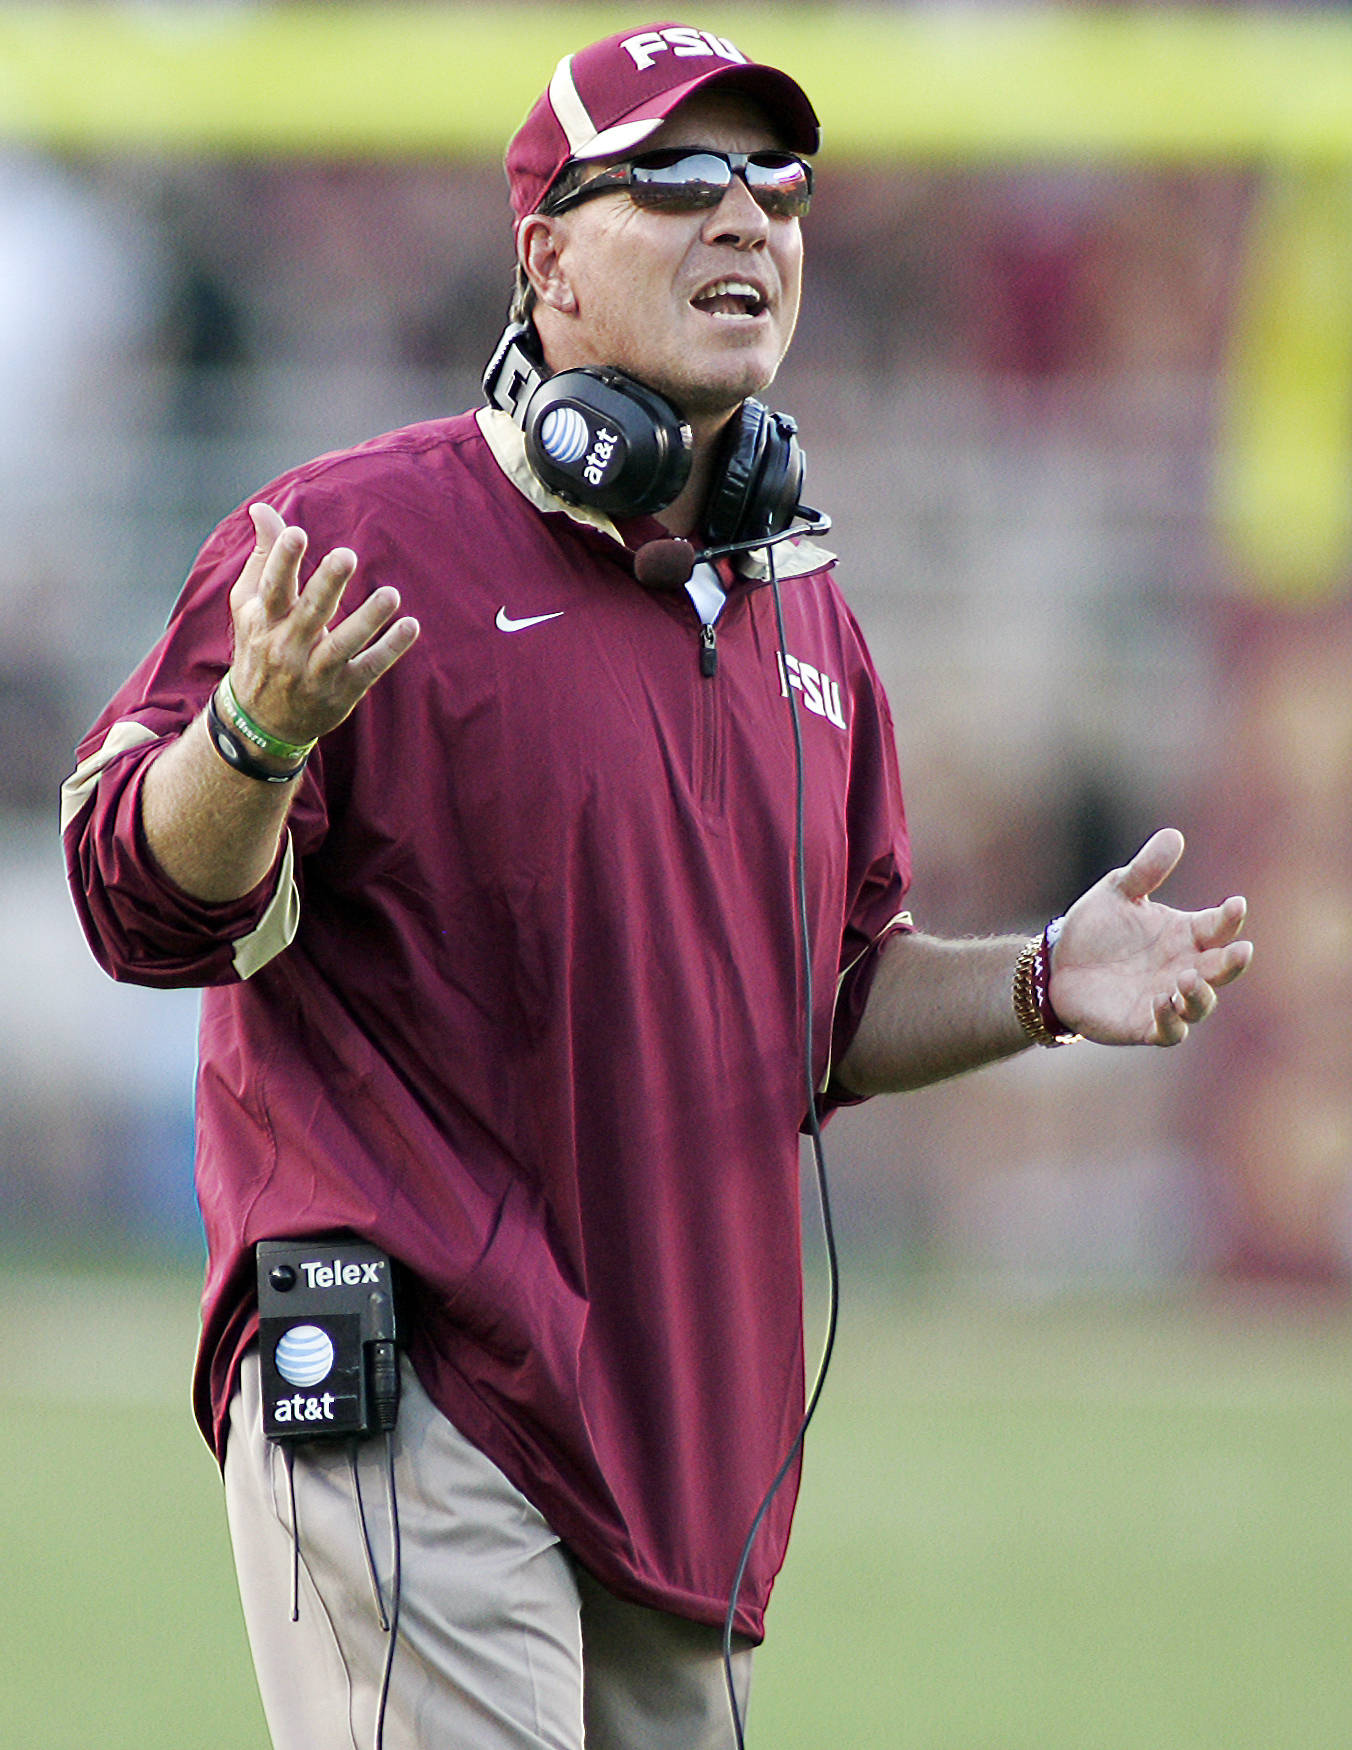 Florida State head coach Jimbo Fisher reacts against Charleston Southern in the second quarter of an NCAA college football game on Saturday, Sept. 10, 2011, in Tallahassee, Fla. FSU won 62-10. (AP Photo/Phil Sears)